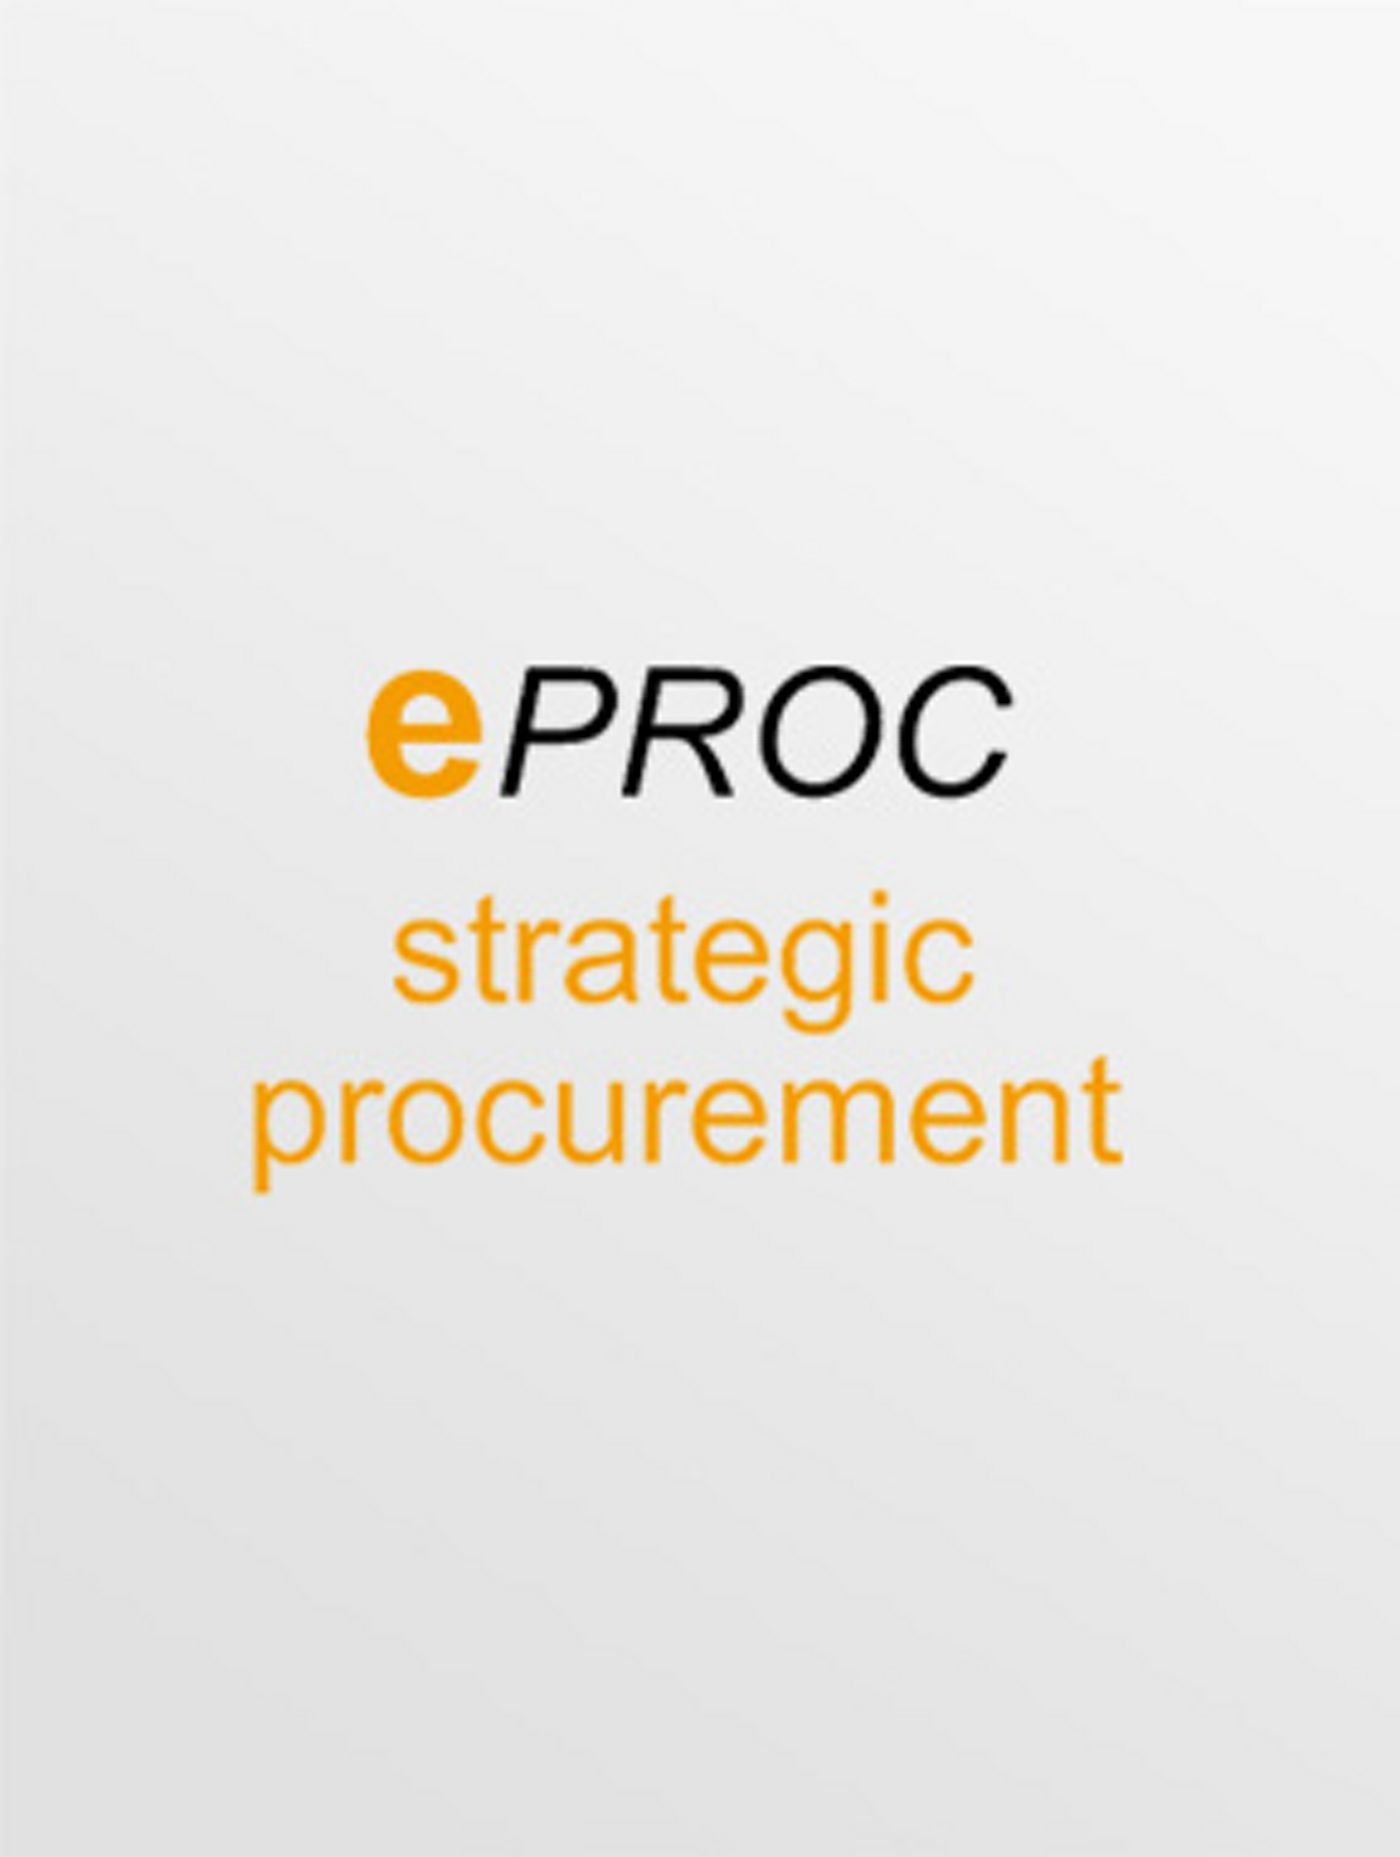 The procurement solution for sourcing and contract management